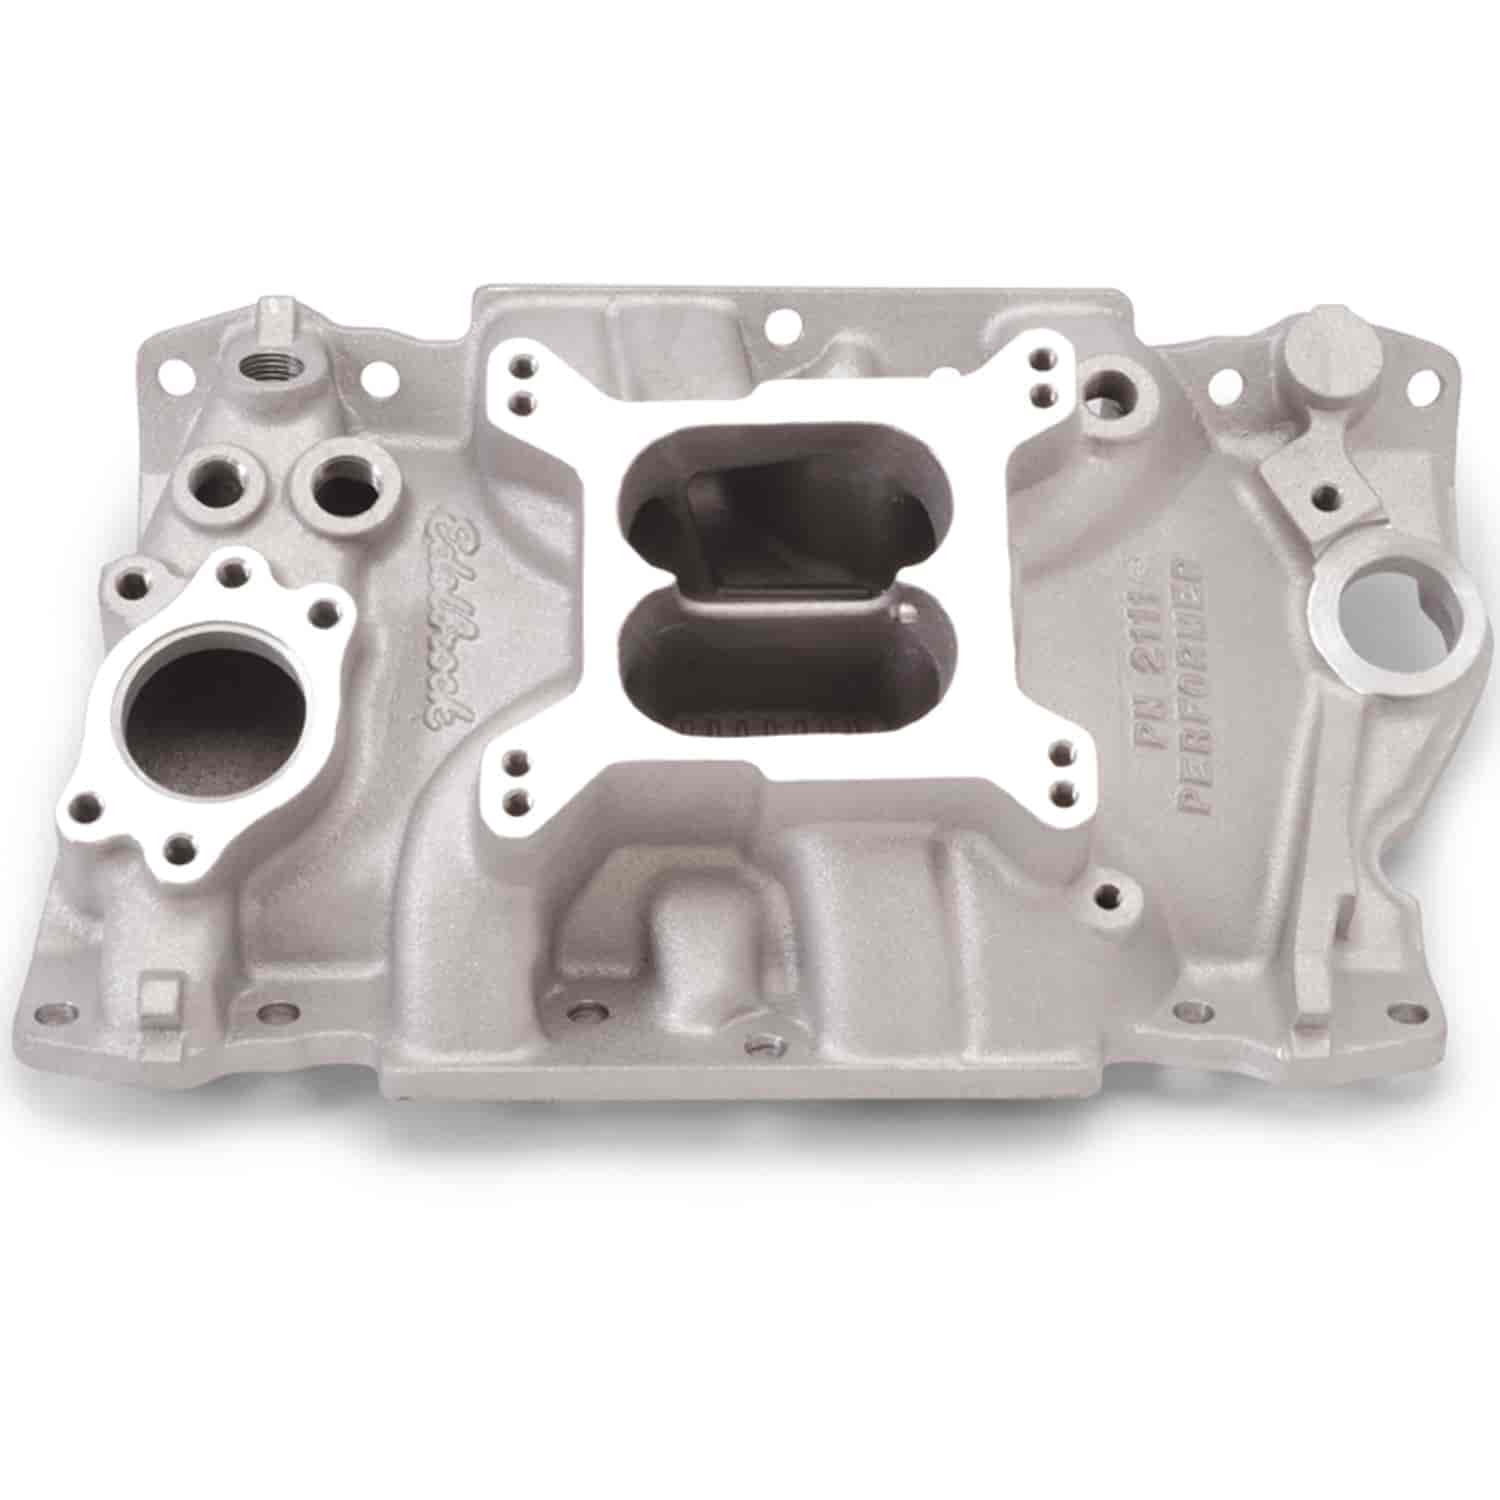 Edelbrock 2111 Performer 90 V6 Chevy Intake Manifold Jegs 350 Alternator Bracket Diagram Car Tuning